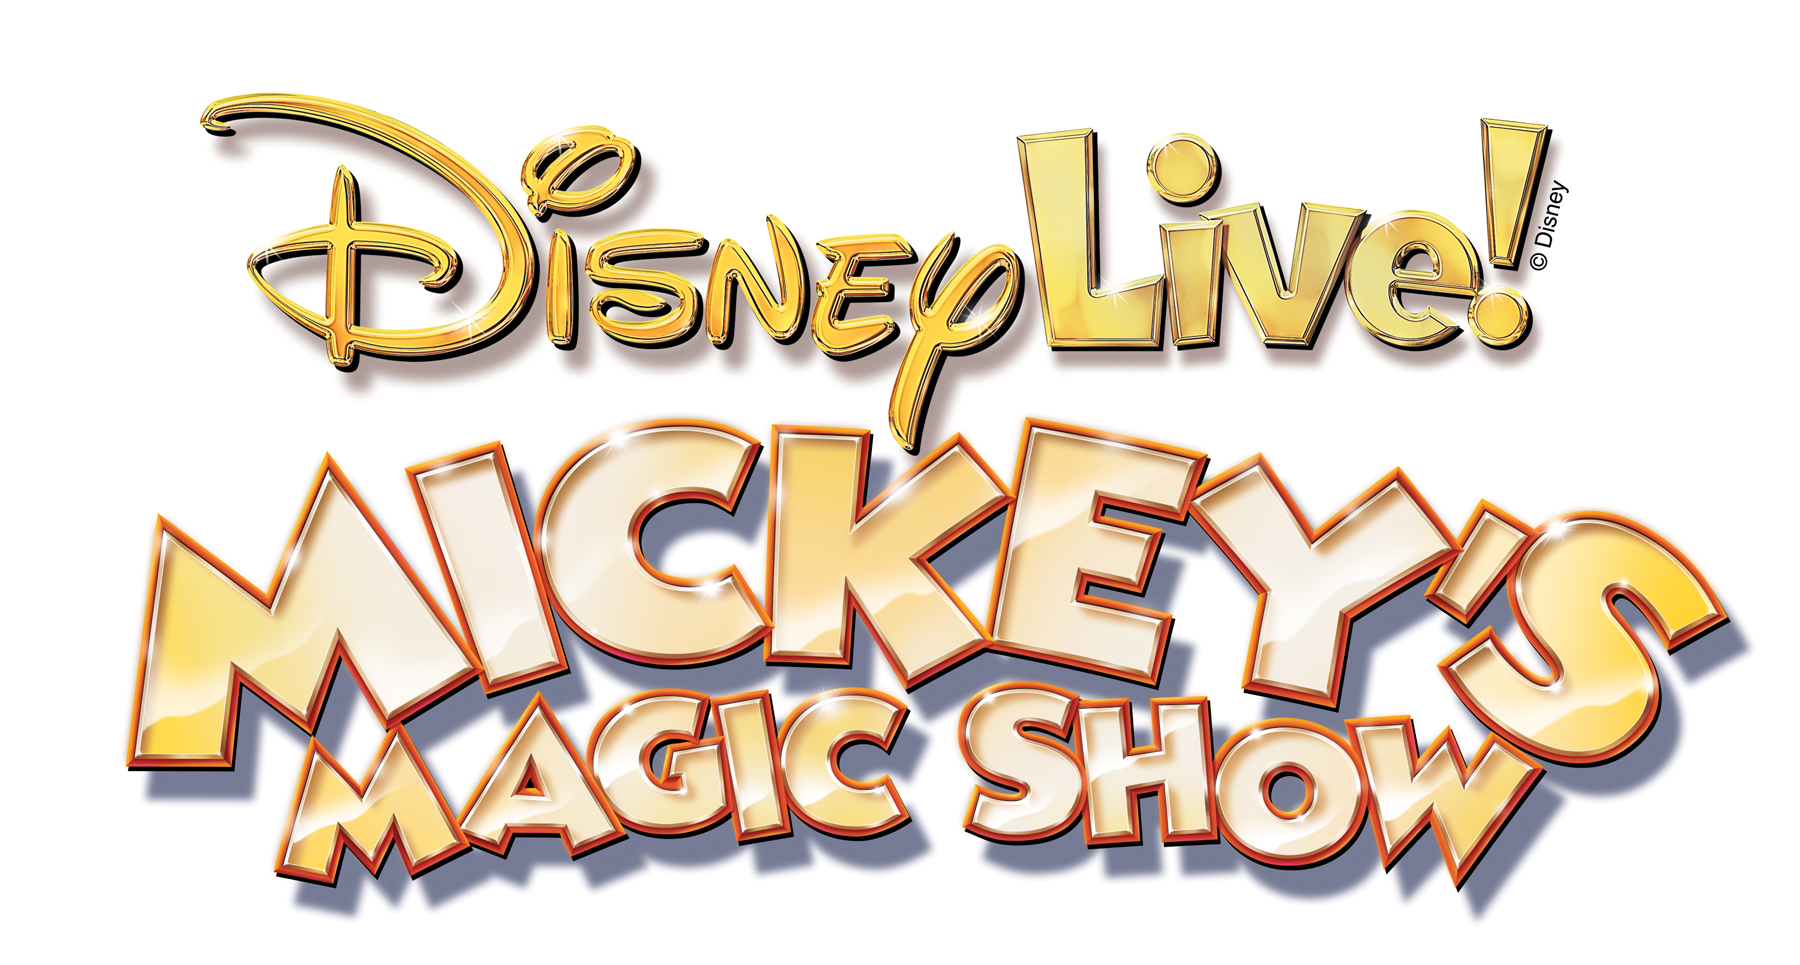 Disney Live! Mickey's Magic Show Ticket Offer & Giveaway